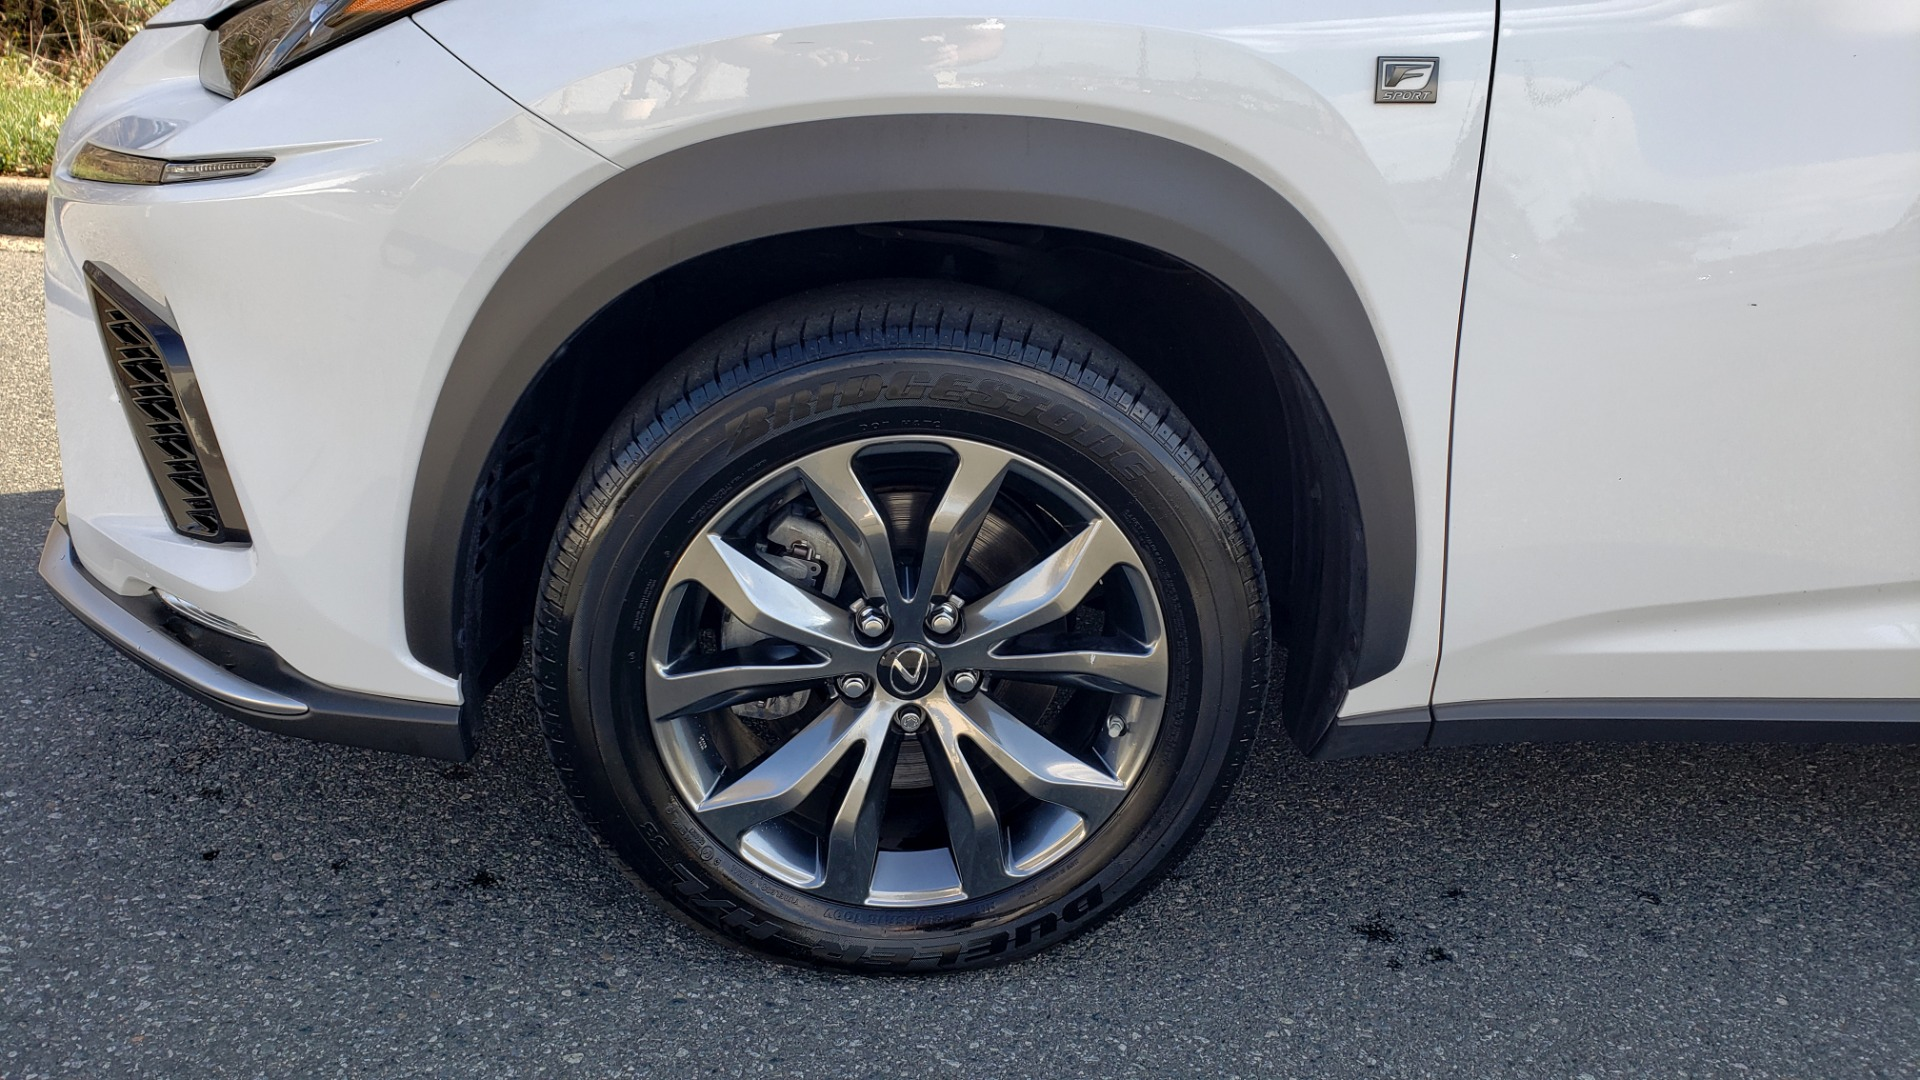 Used 2019 Lexus NX 300 F-SPORT / 2.0L TURBO / LEATHER / 18IN WHEELS / REARVIEW for sale $31,195 at Formula Imports in Charlotte NC 28227 82